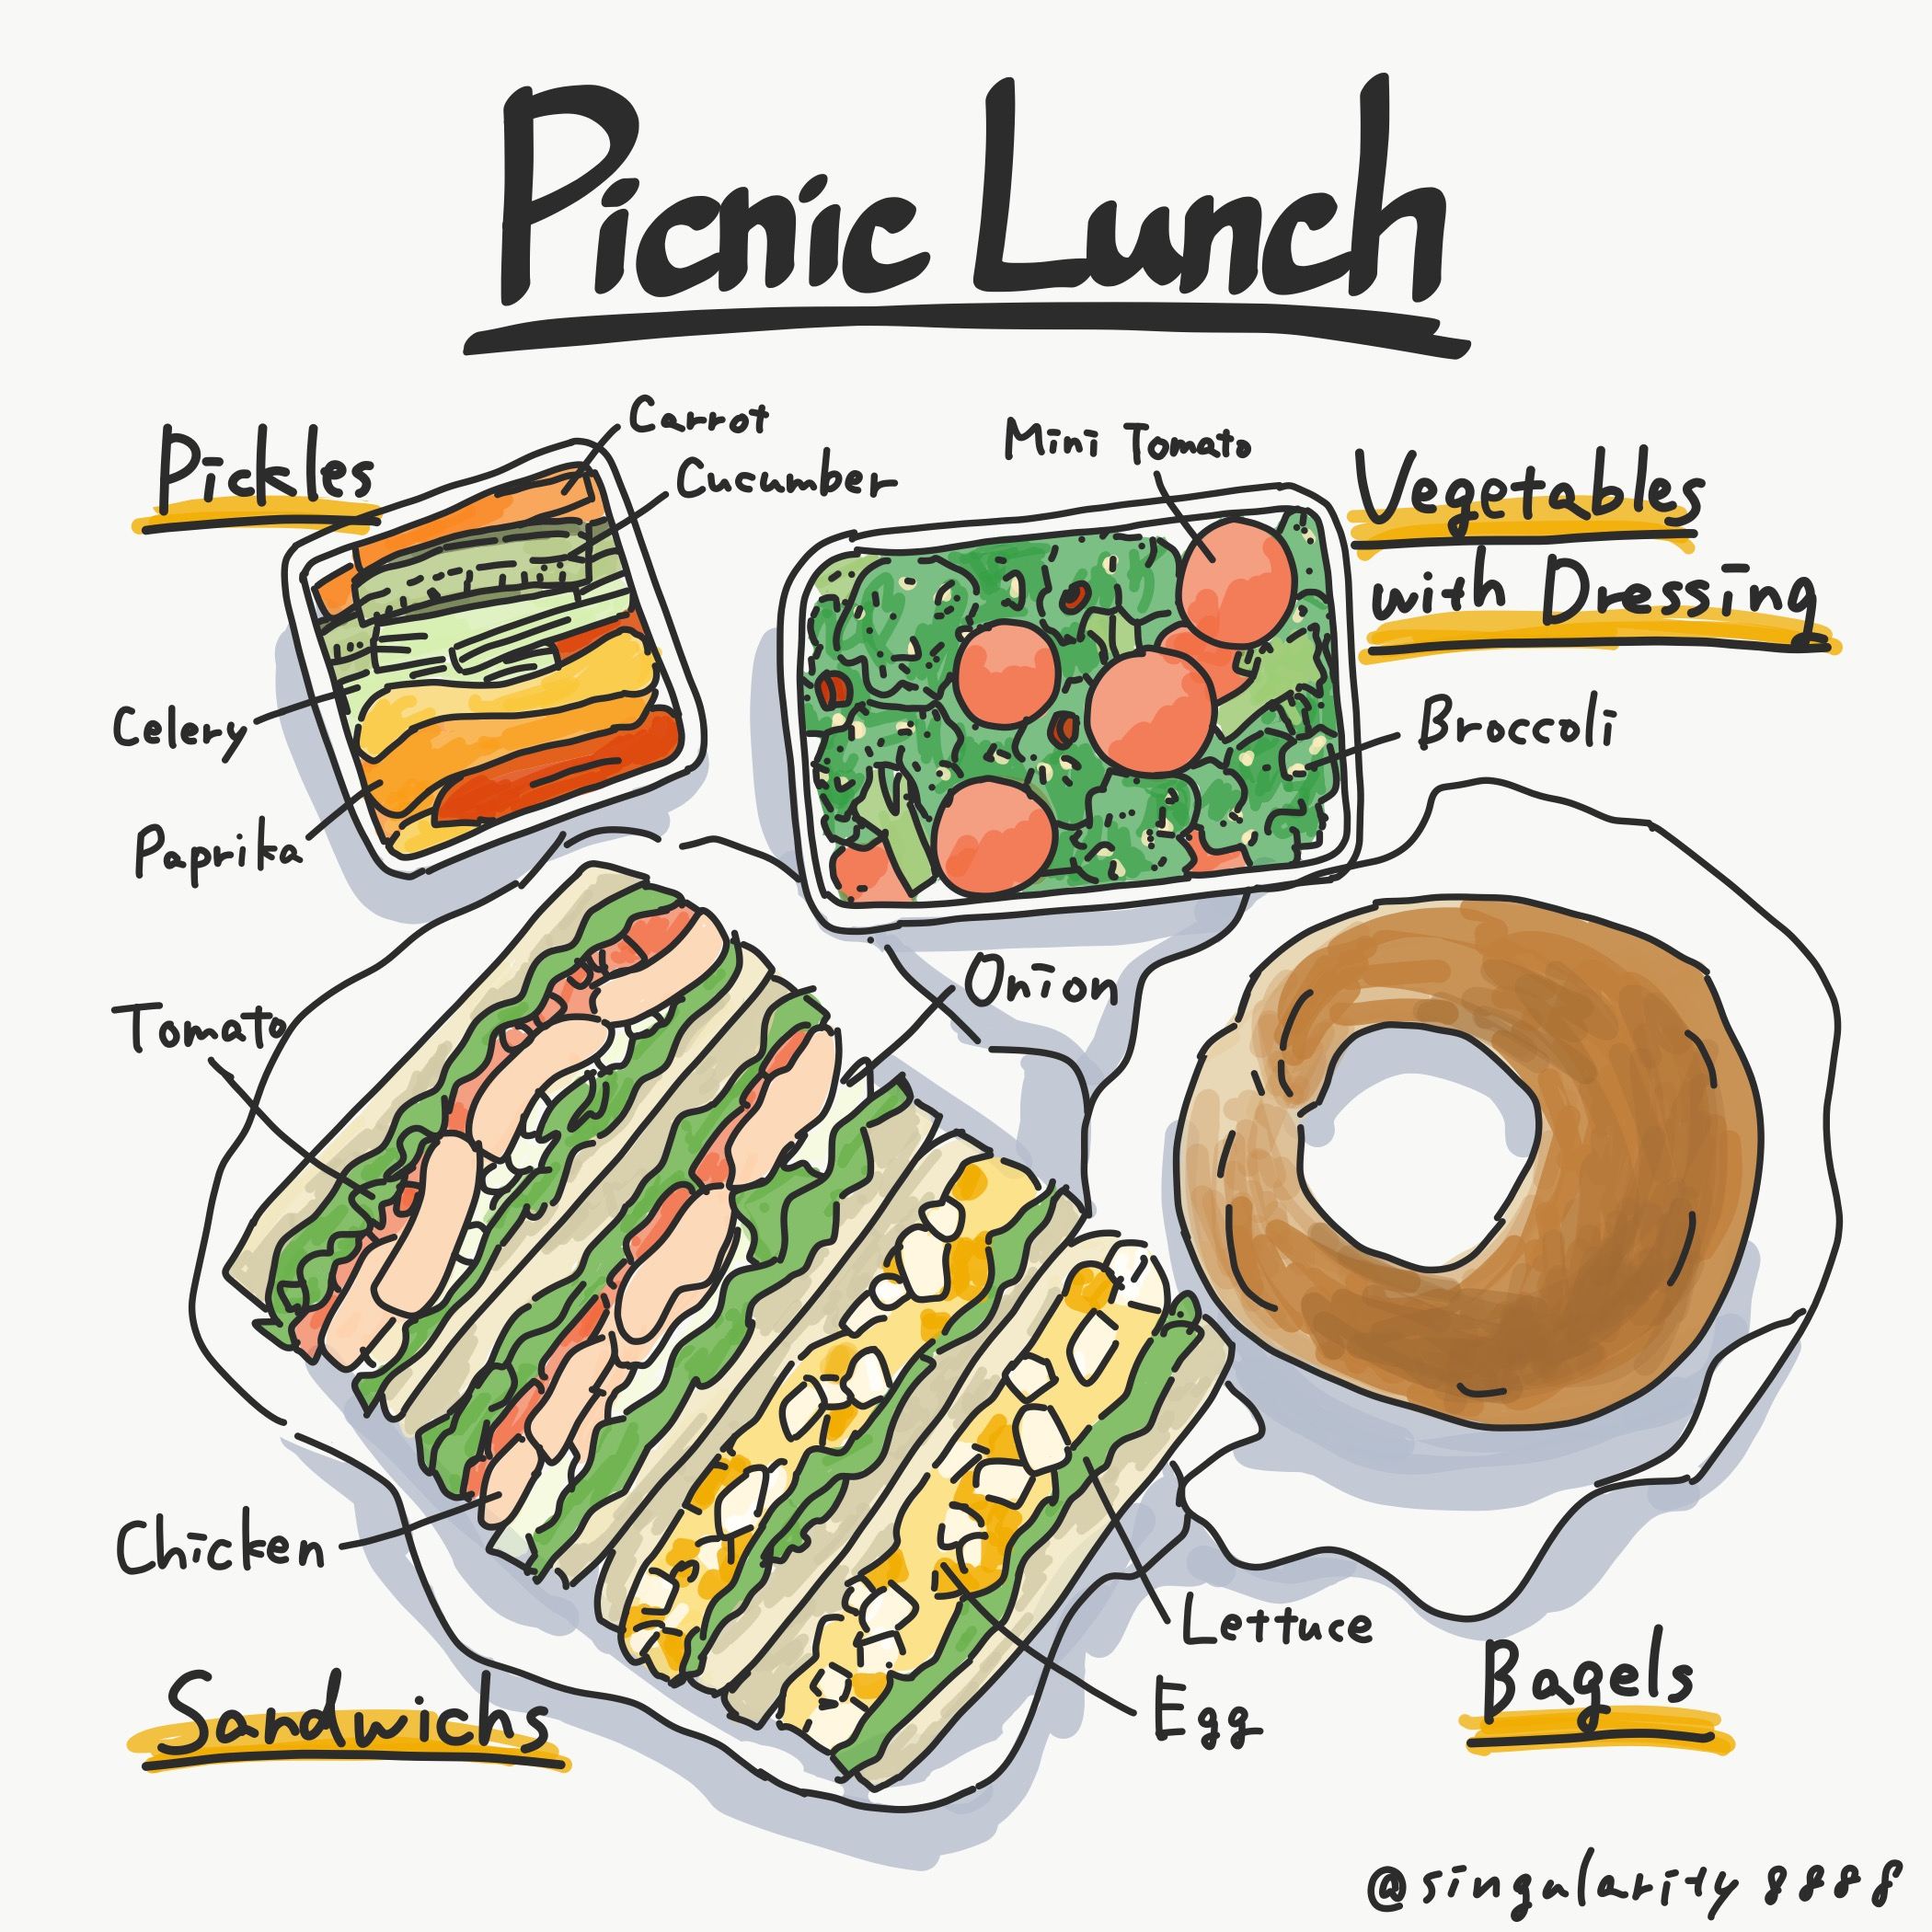 Picnic Lunch on April 6, 2017 Image